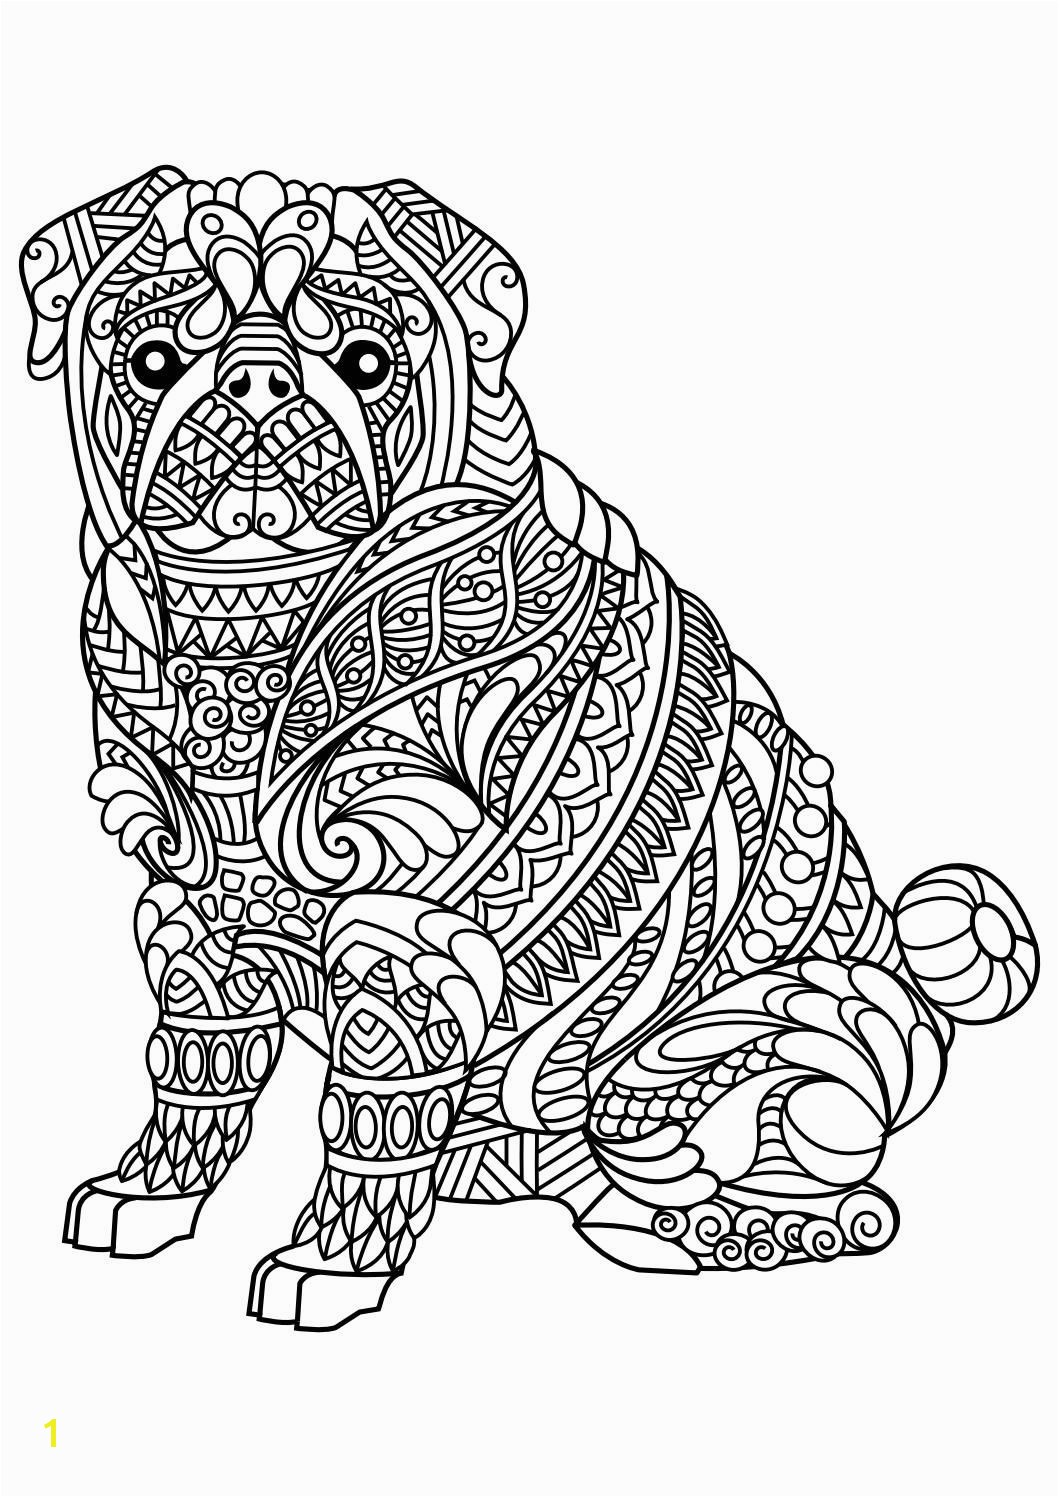 Printable Complex Animal Coloring Pages Animal Coloring Pages Pdf Coloring Animals Pinterest